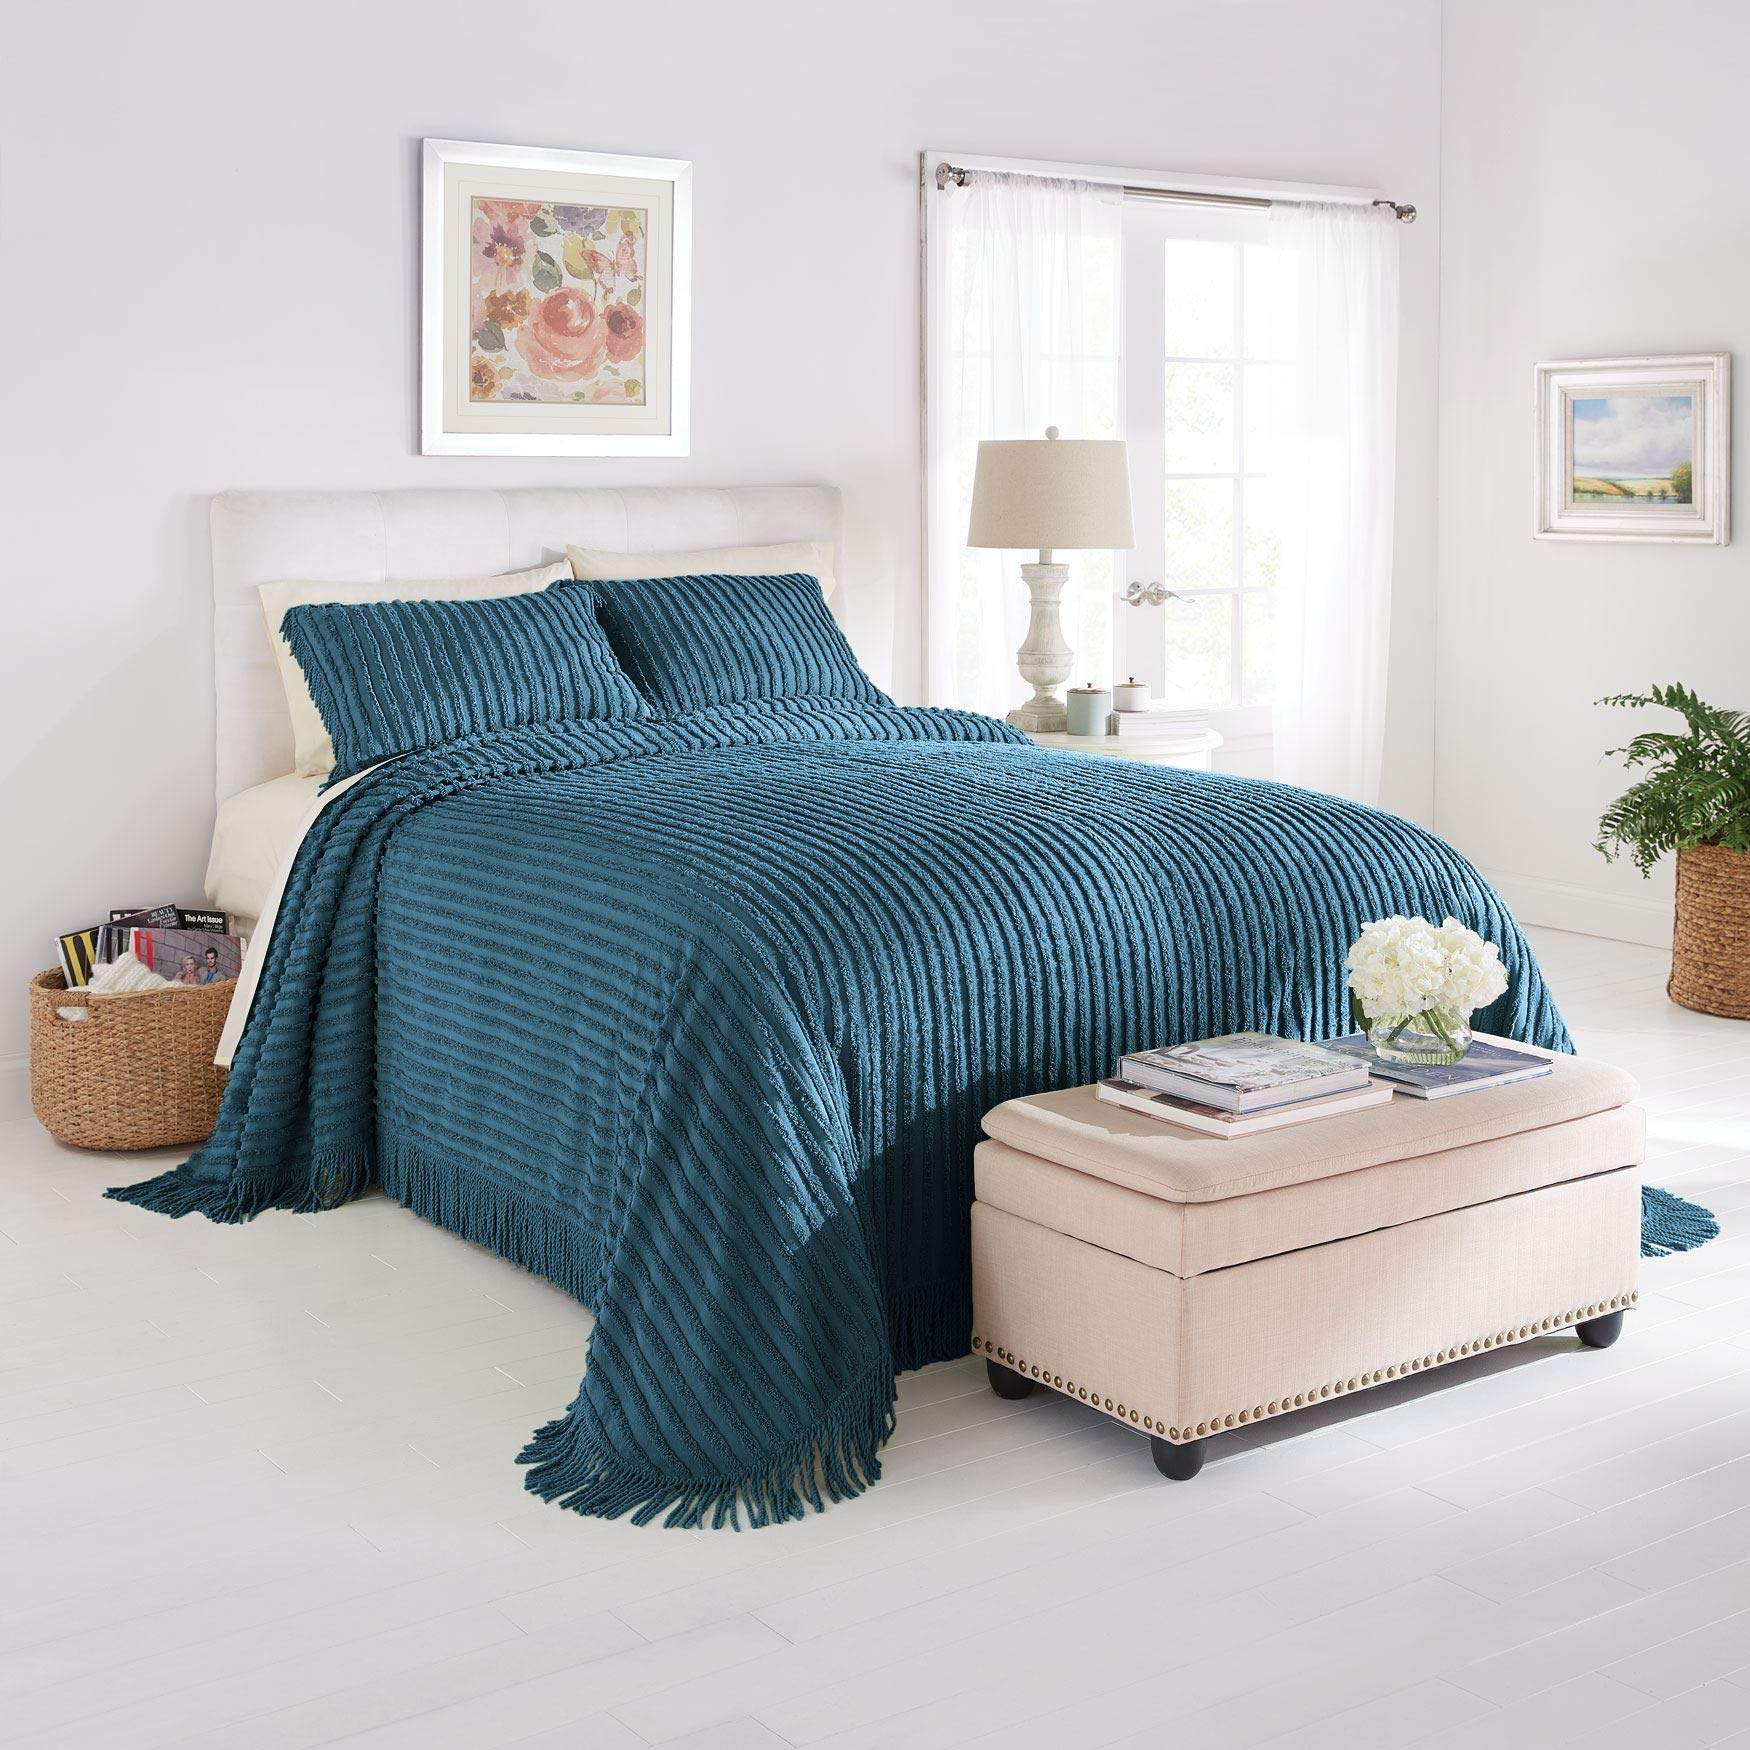 BrylaneHome Chenille Bedspread - Antique Blue, King